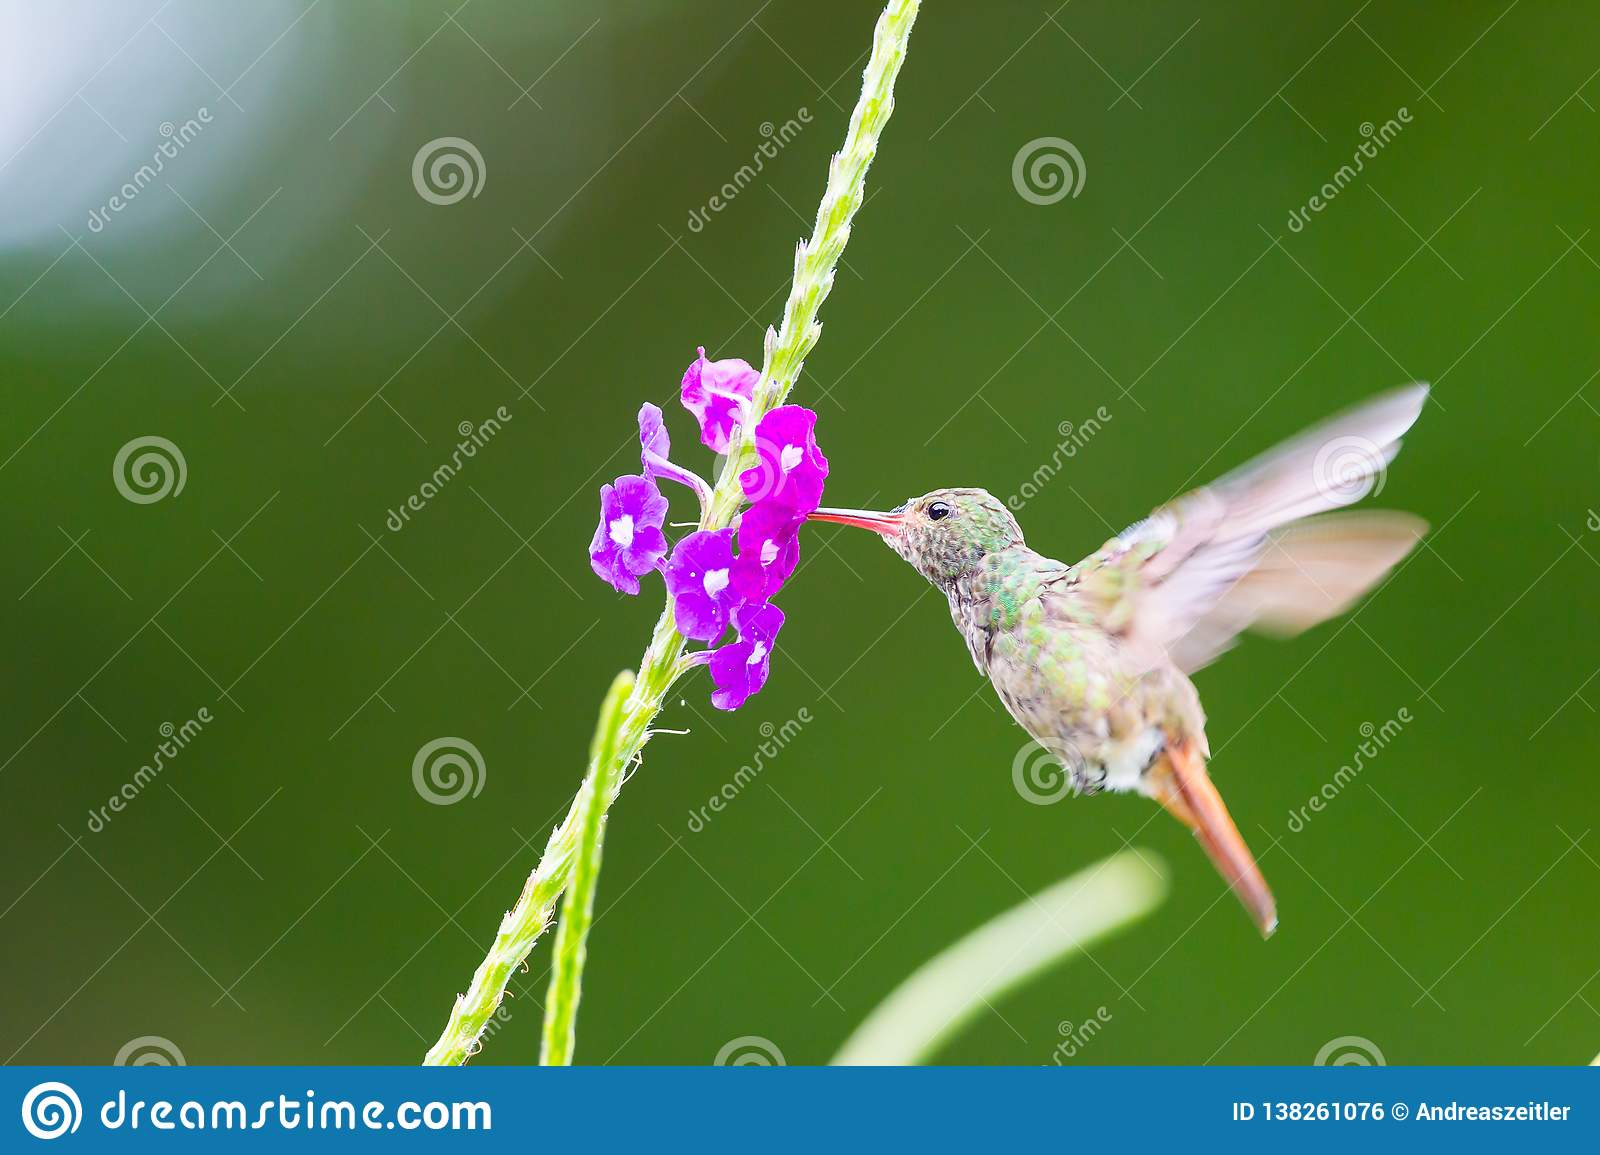 Hummingbird, Colibri thalassinus, beautiful green blue hummingbird from Central America hovering in front of flower background in